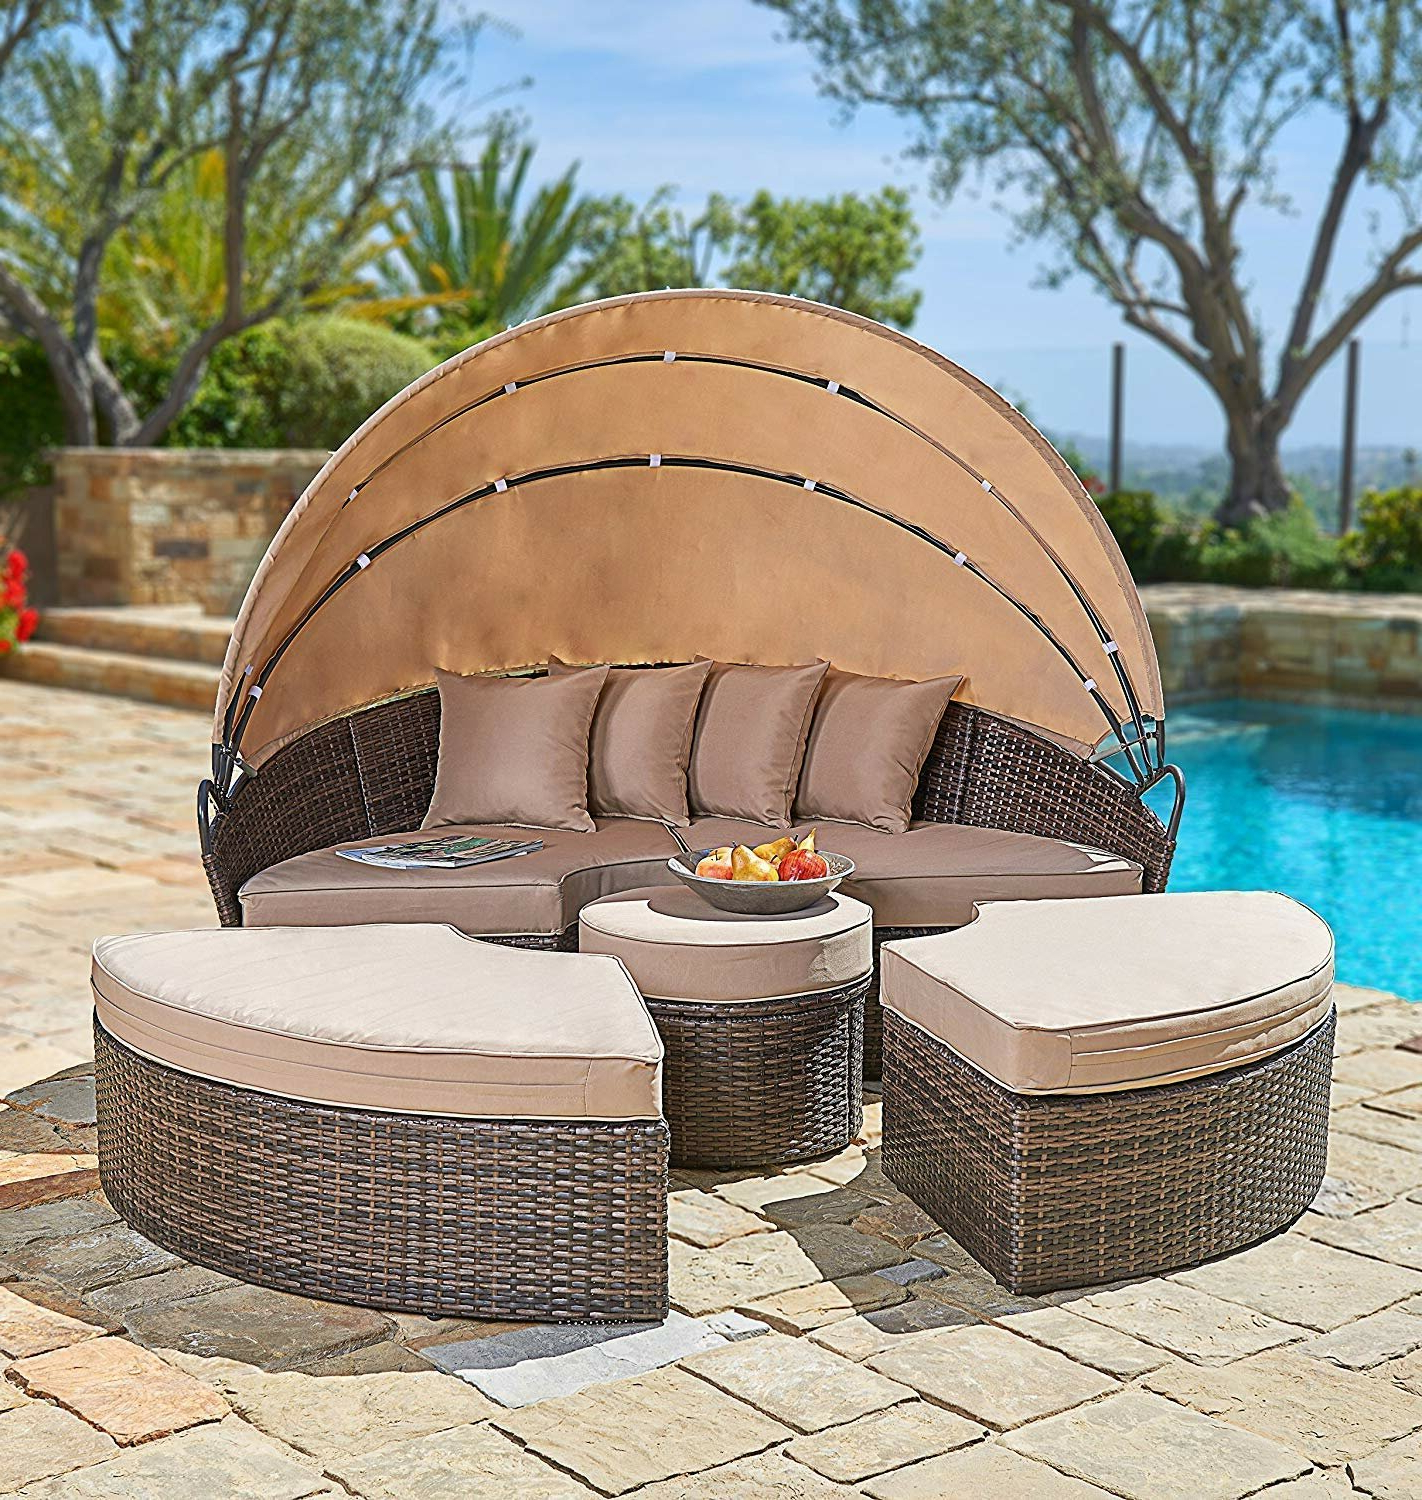 Most Popular Behling Canopy Patio Daybed With Cushions Pertaining To Lavina Outdoor Patio Daybeds With Cushions (View 15 of 20)